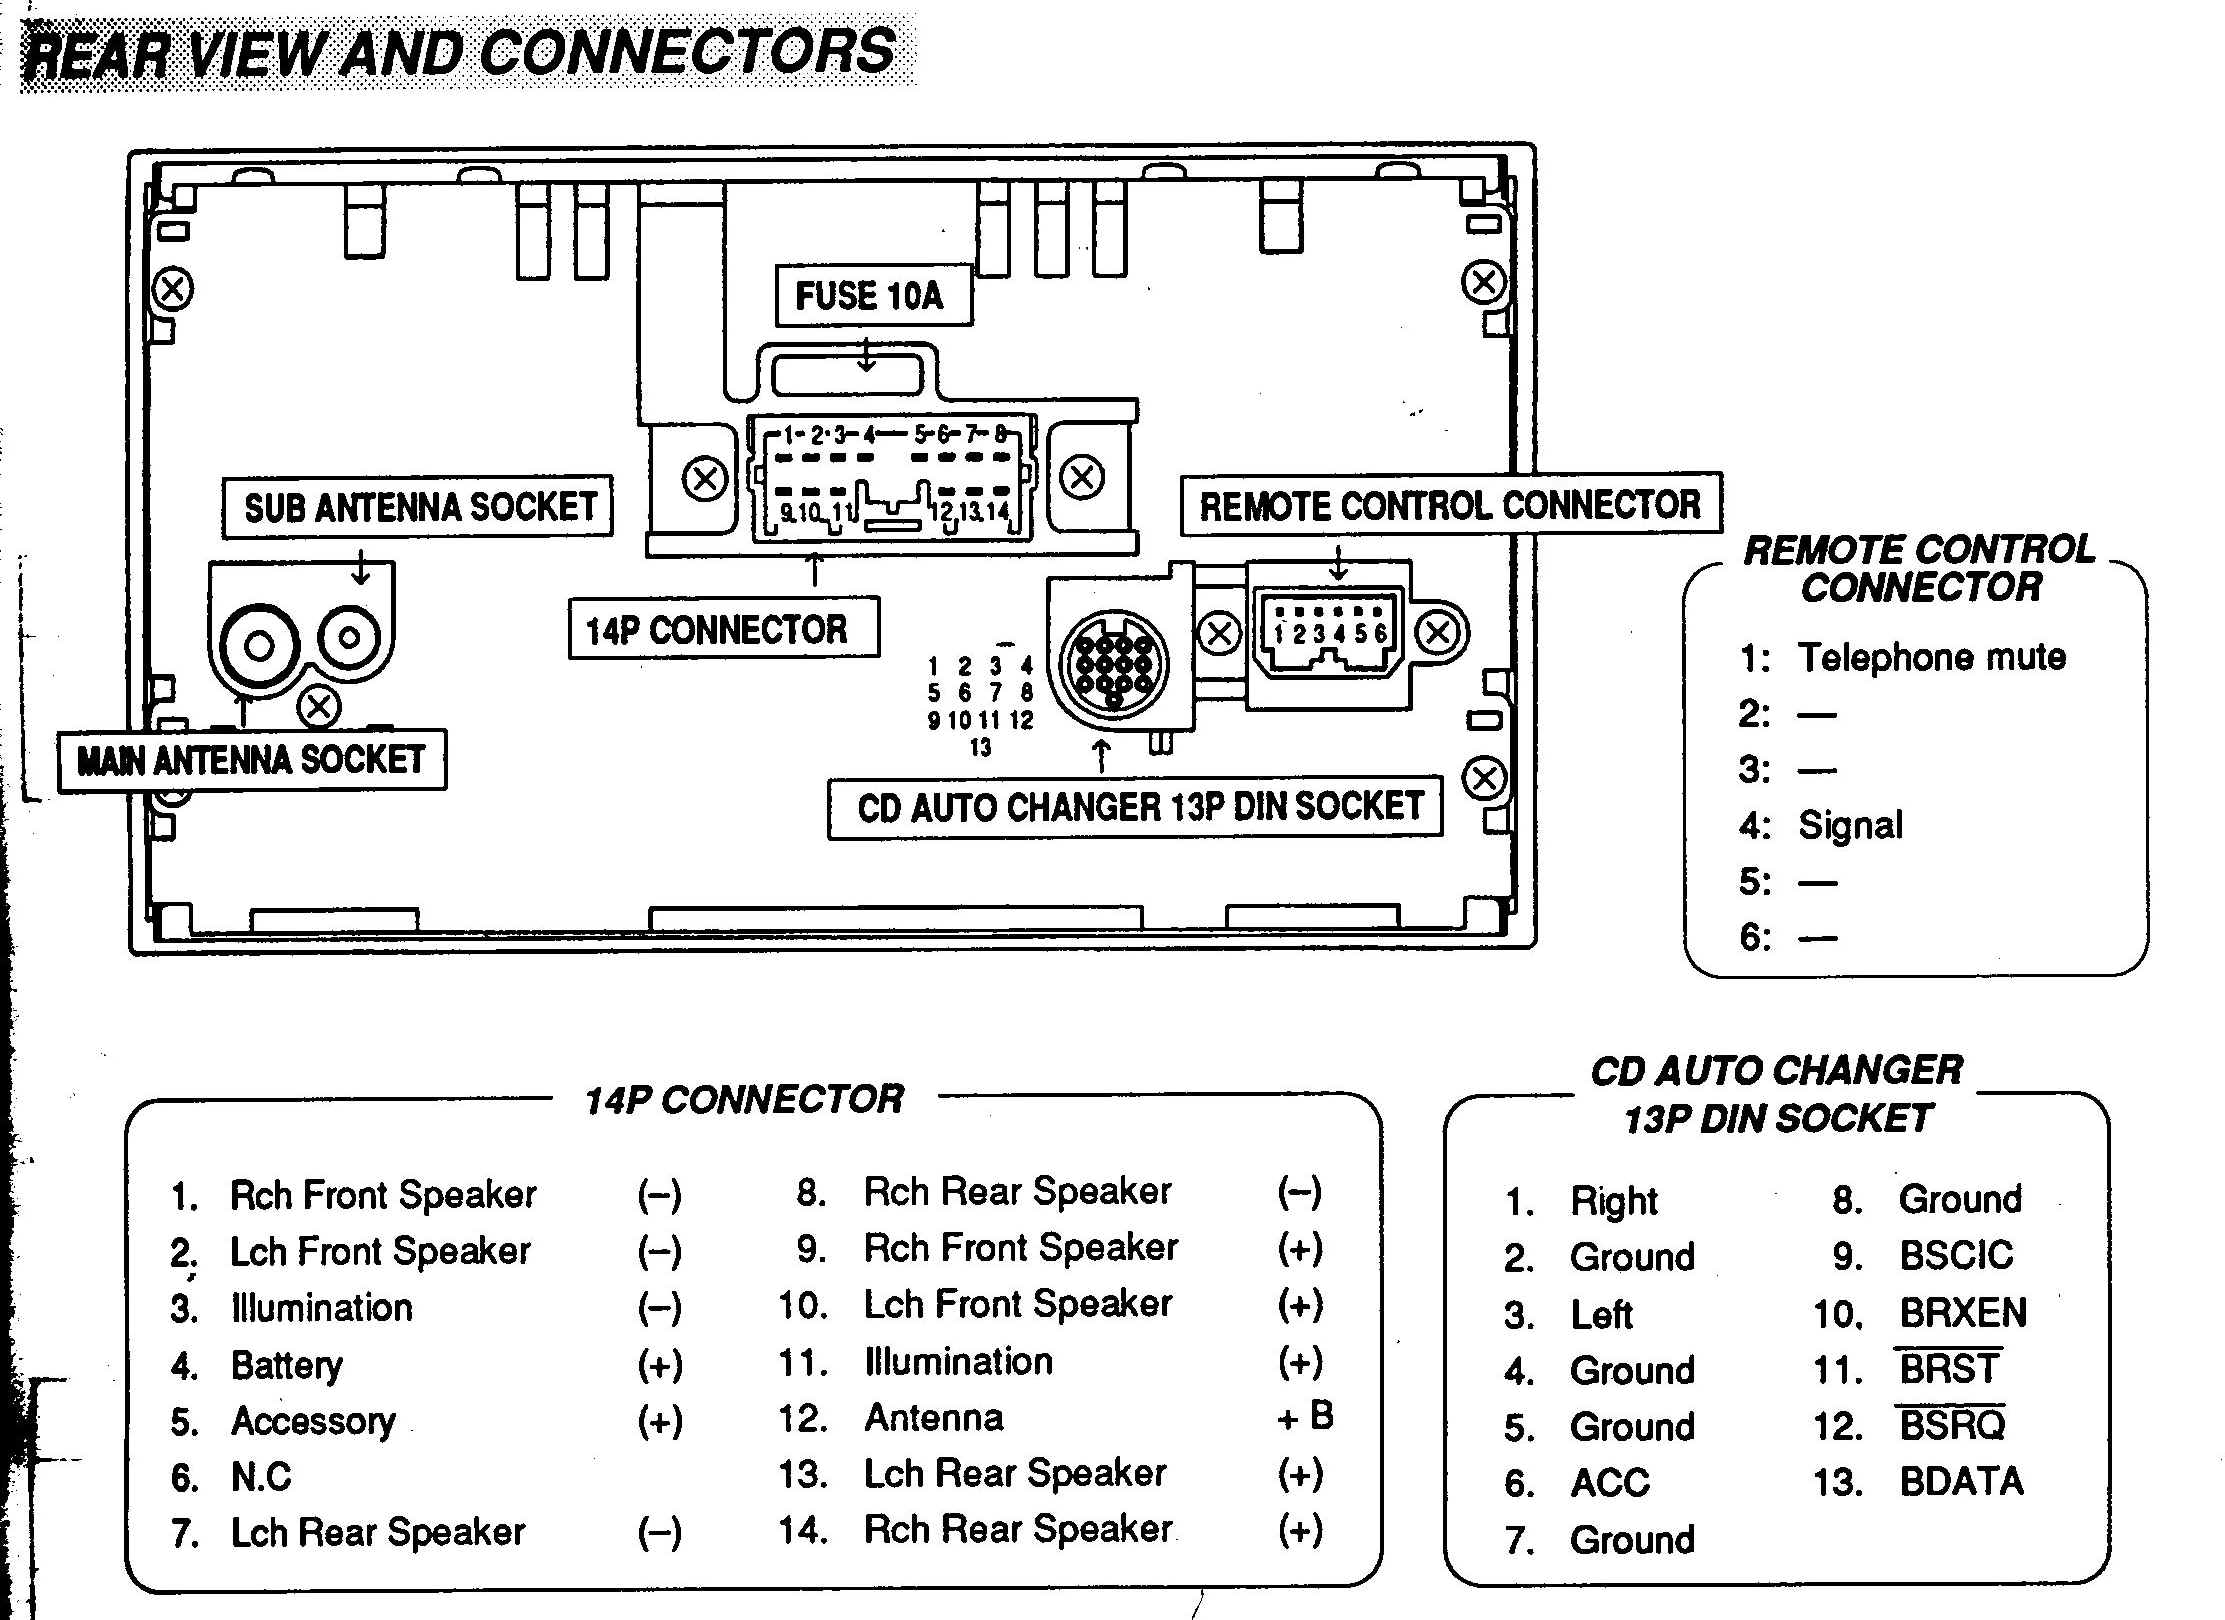 WireHarnessMit121003 mitsubishi radio wiring diagram mitsubishi eclipse wiring diagram 1999 mitsubishi montero sport radio wiring diagram at webbmarketing.co